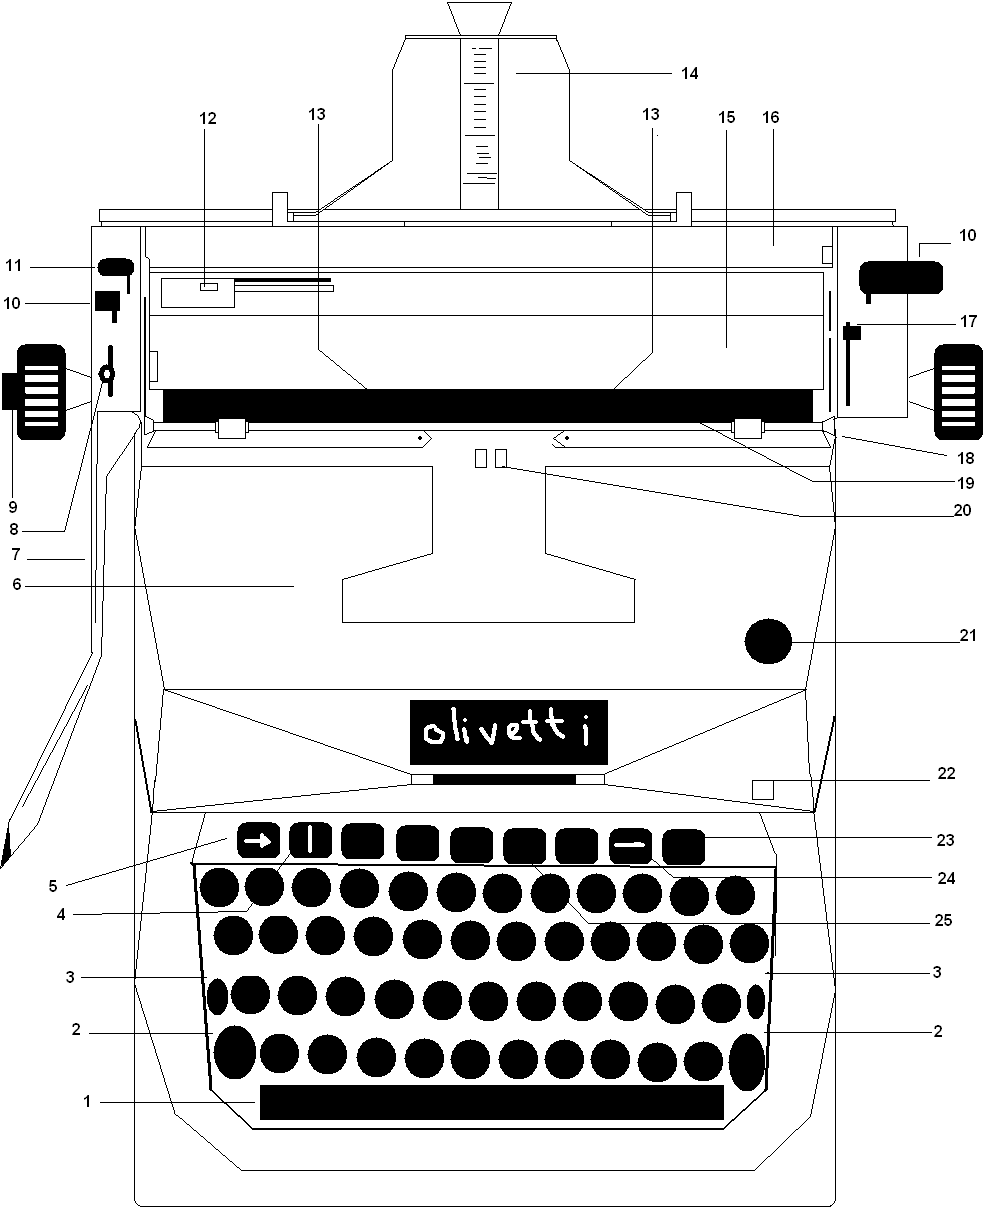 Ibm Selectric Ll Manual download free software